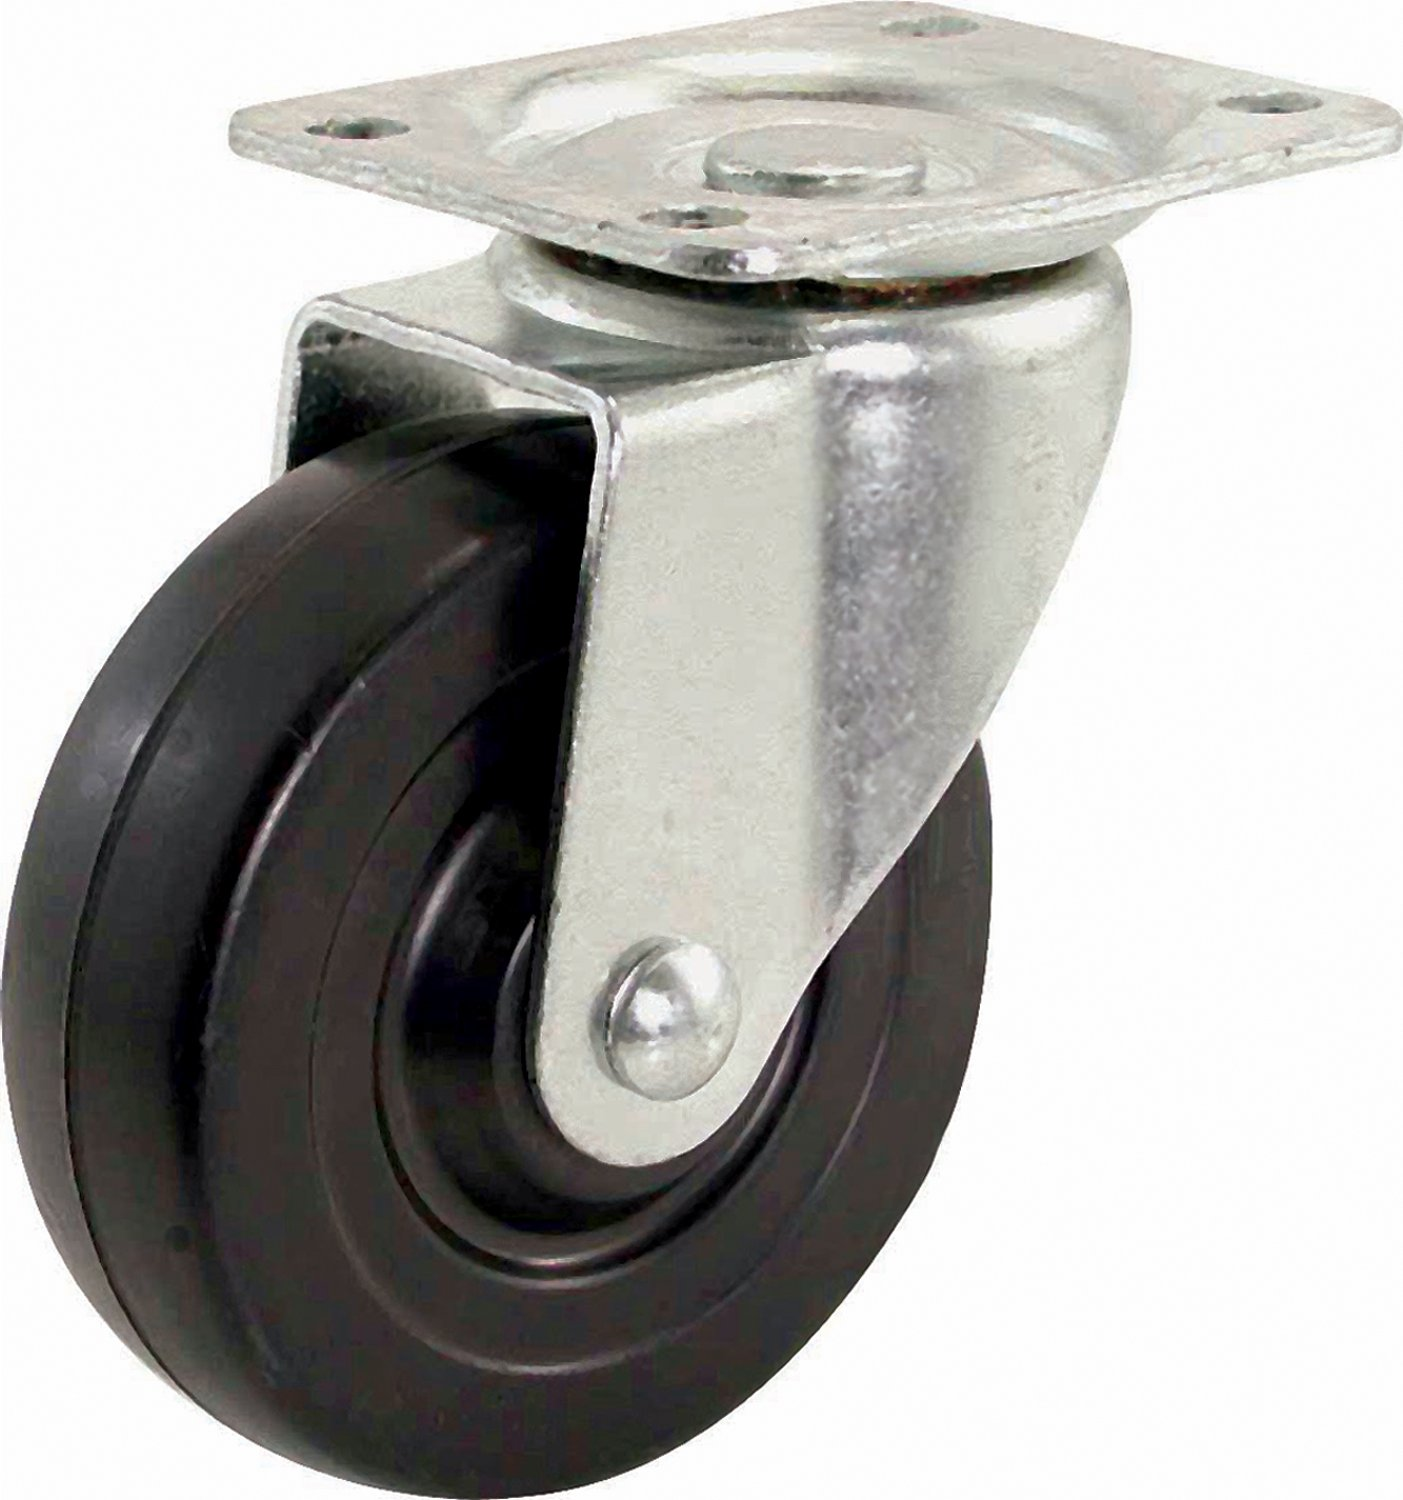 Shepherd Hardware 9014 3 Inch Swivel Plate Caster Soft Rubber Wheel 110 lb Load Capacity